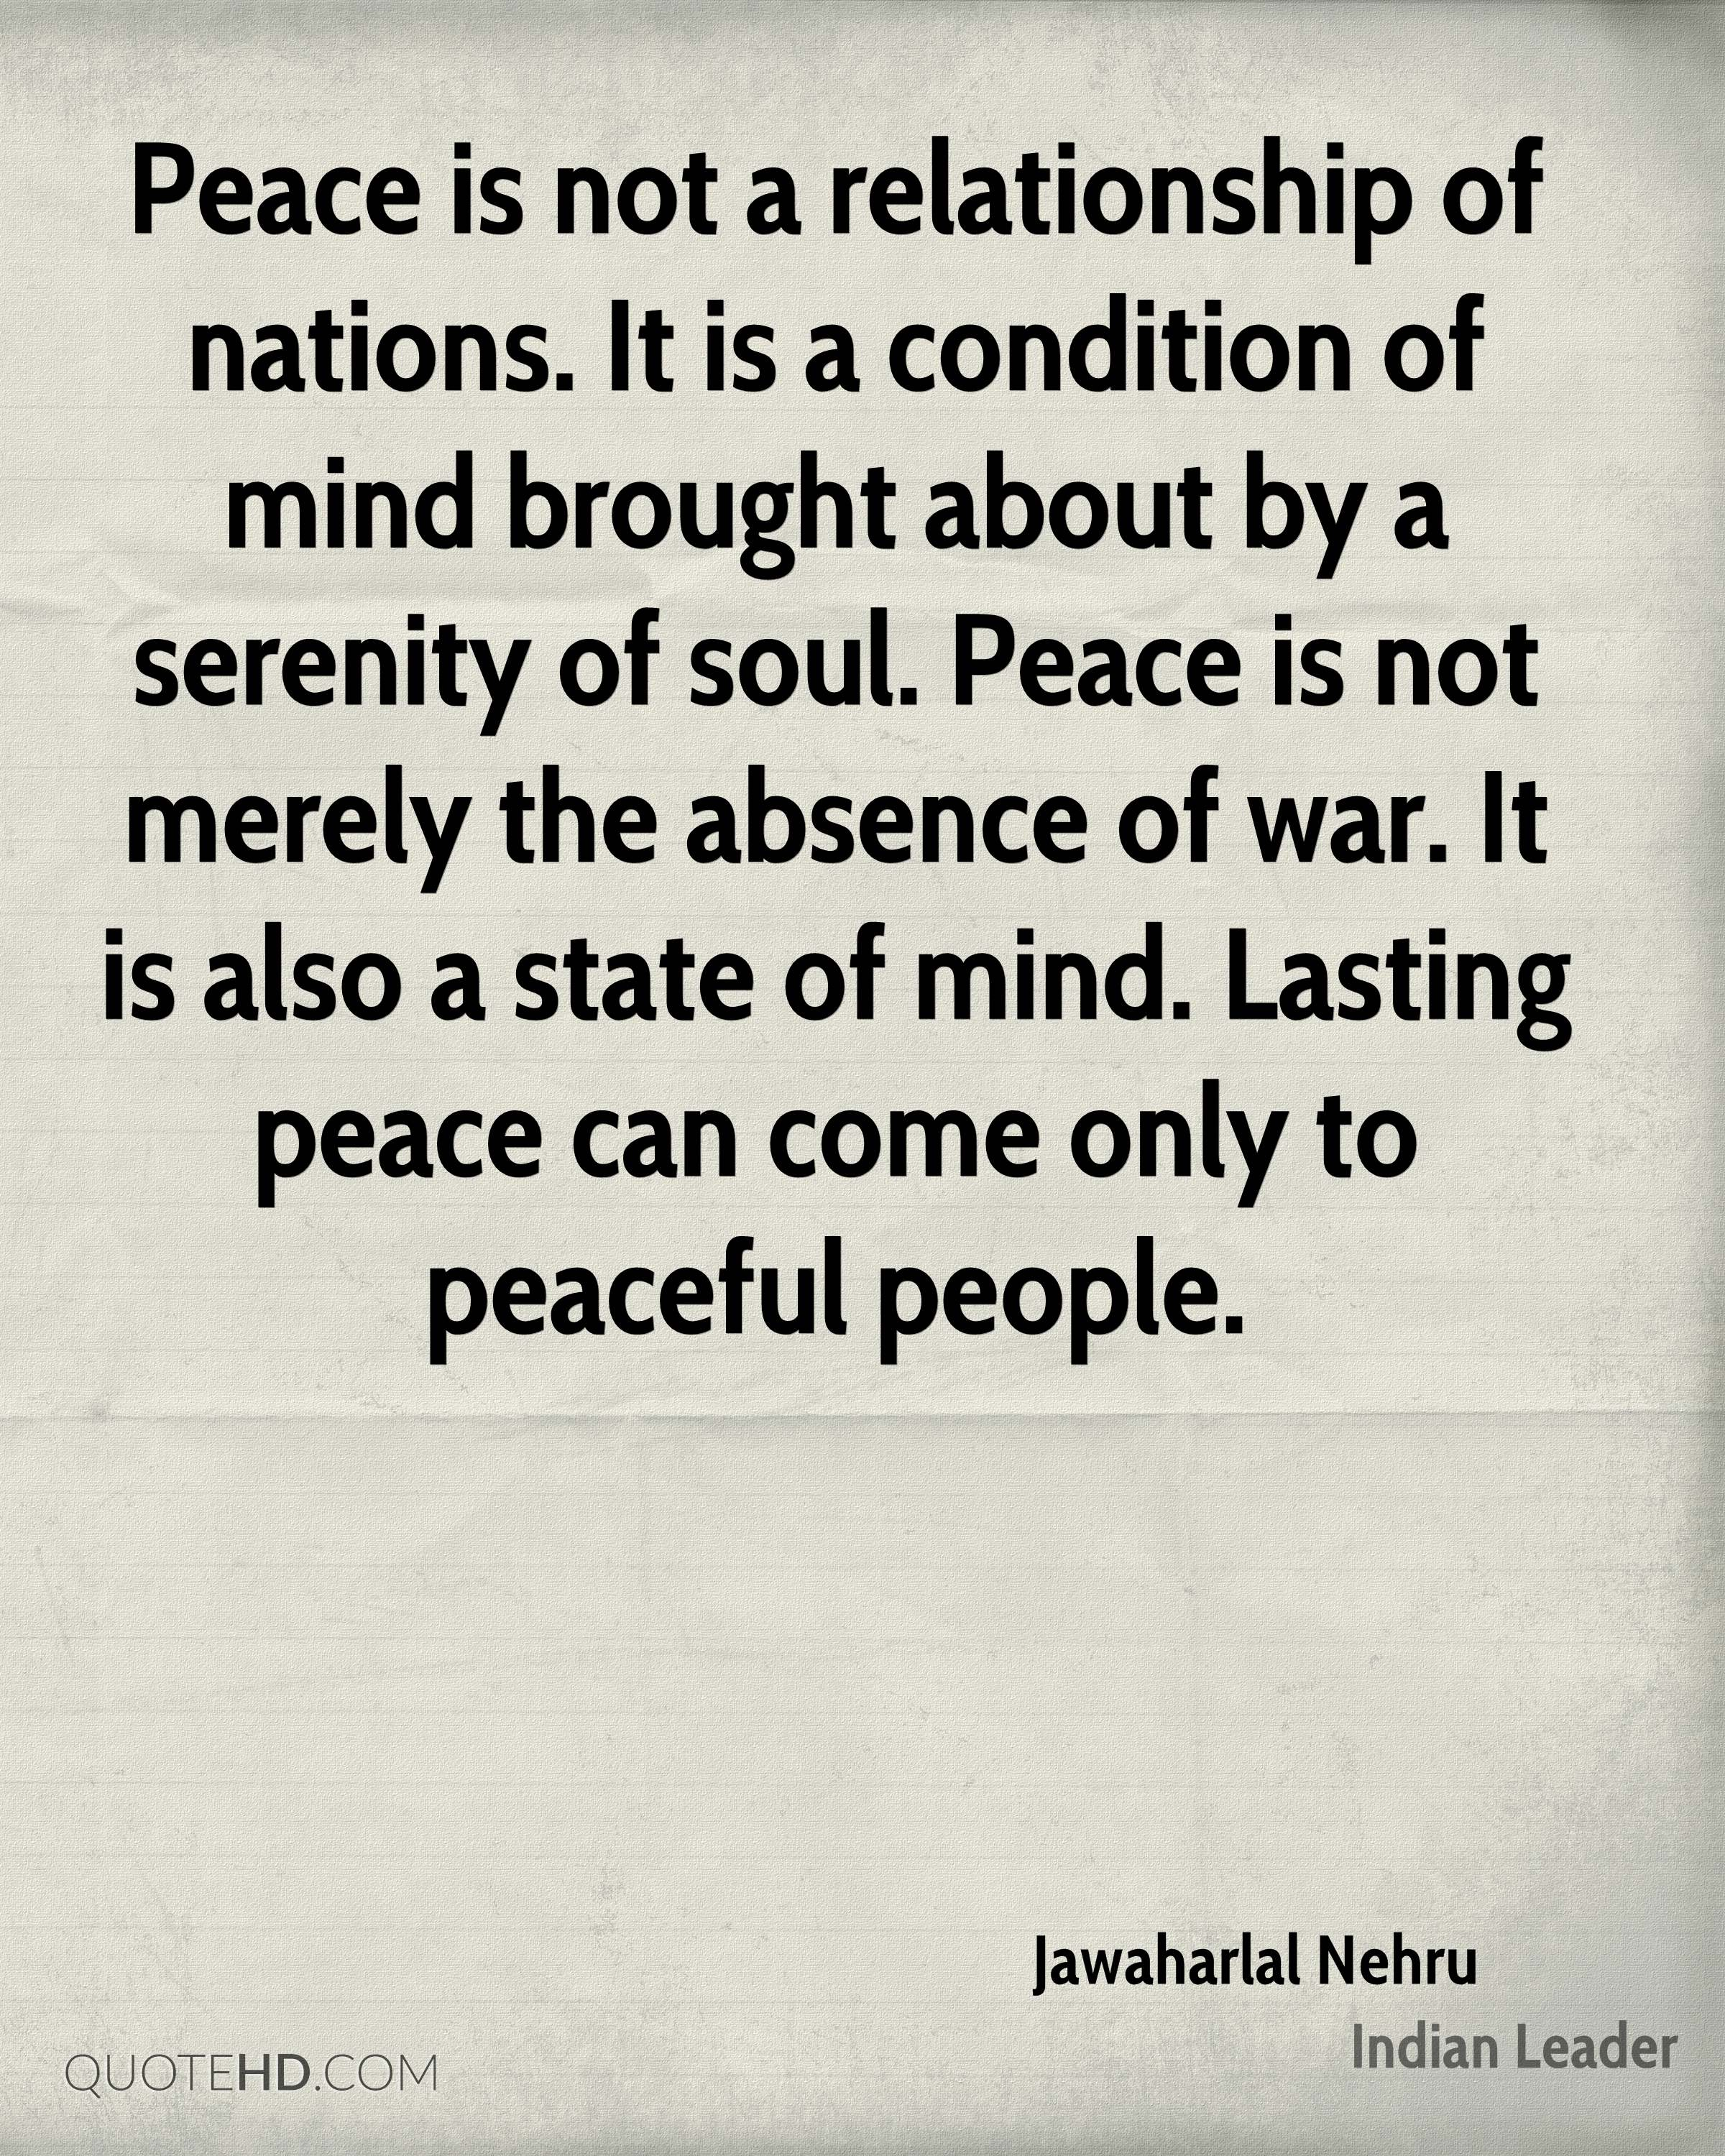 Peace is not a relationship of nations. It is a condition of mind brought about by a serenity of soul. Peace is not merely the absence of war. It is also a state of mind. Lasting peace can come only to peaceful people.